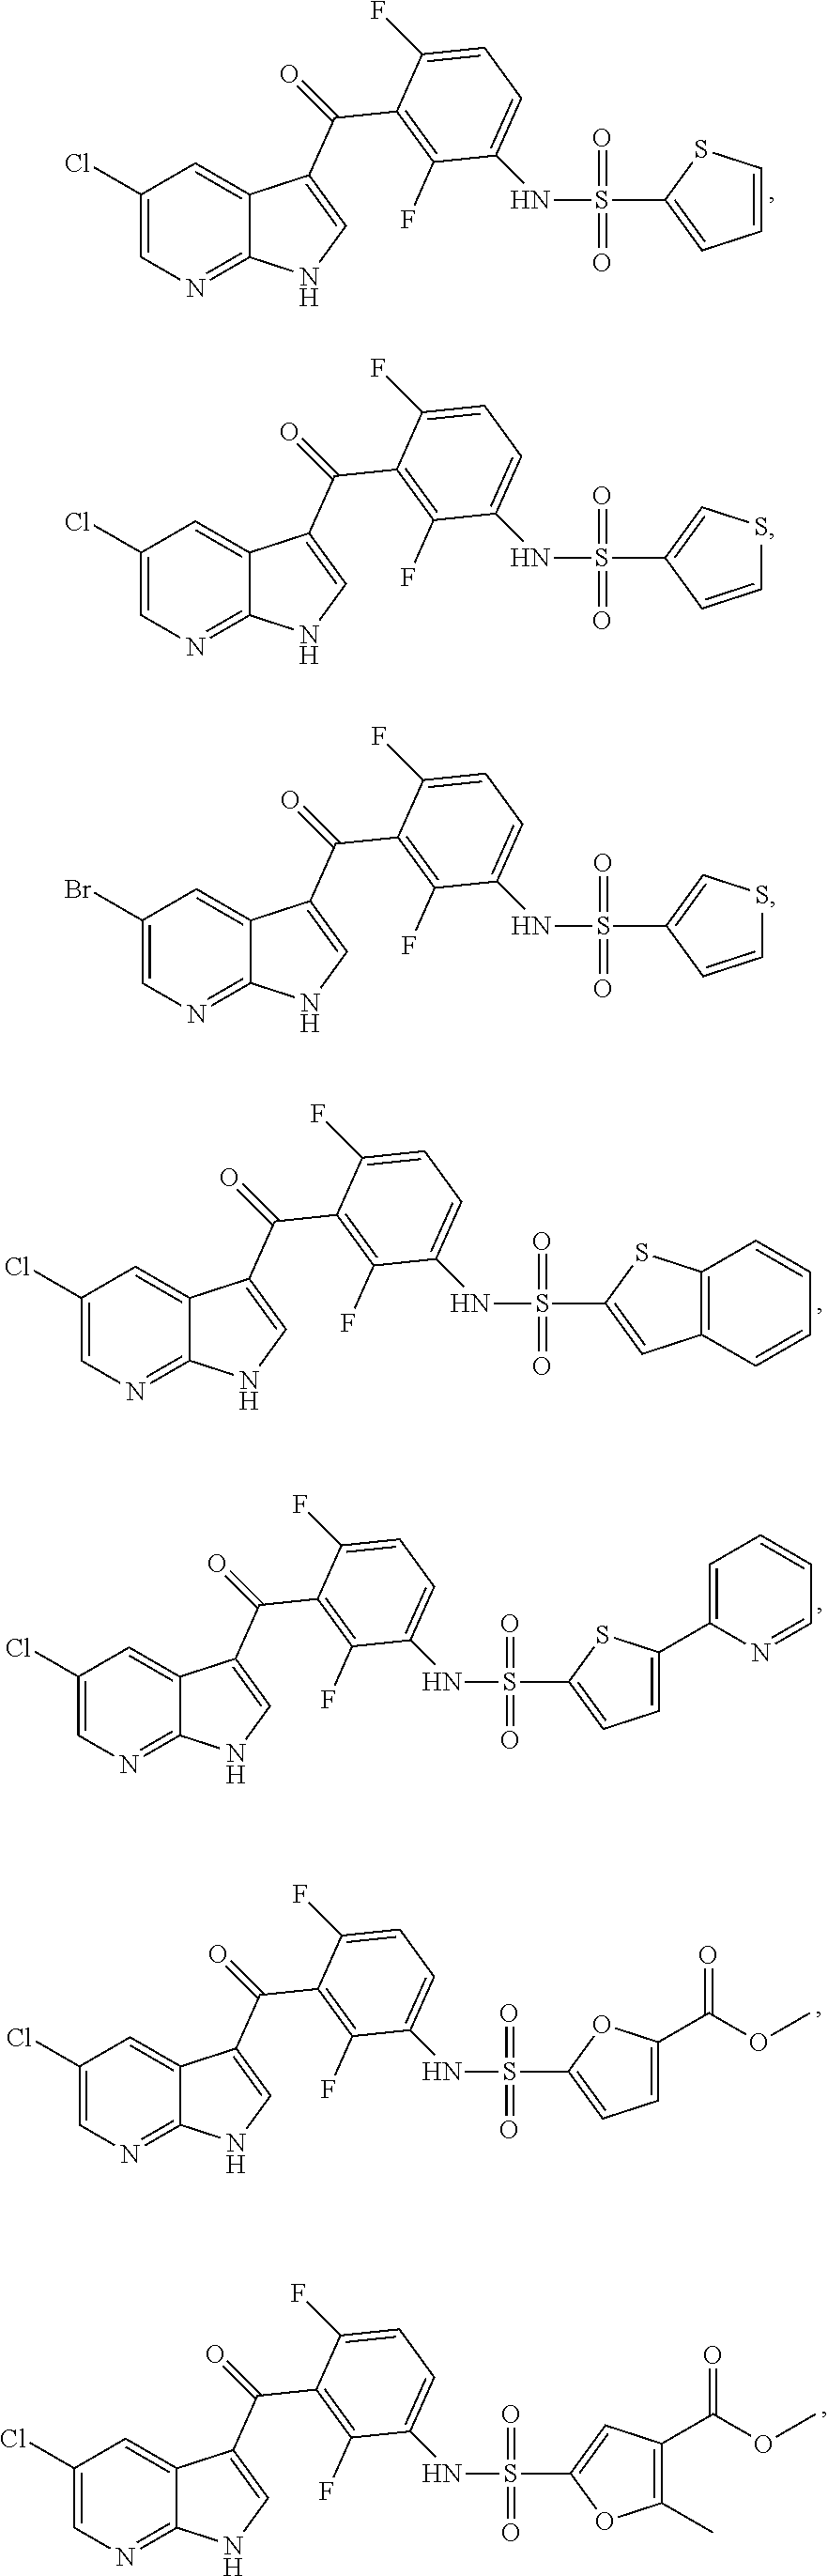 US20110092538A1 - Compounds and methods for kinase modulation, and